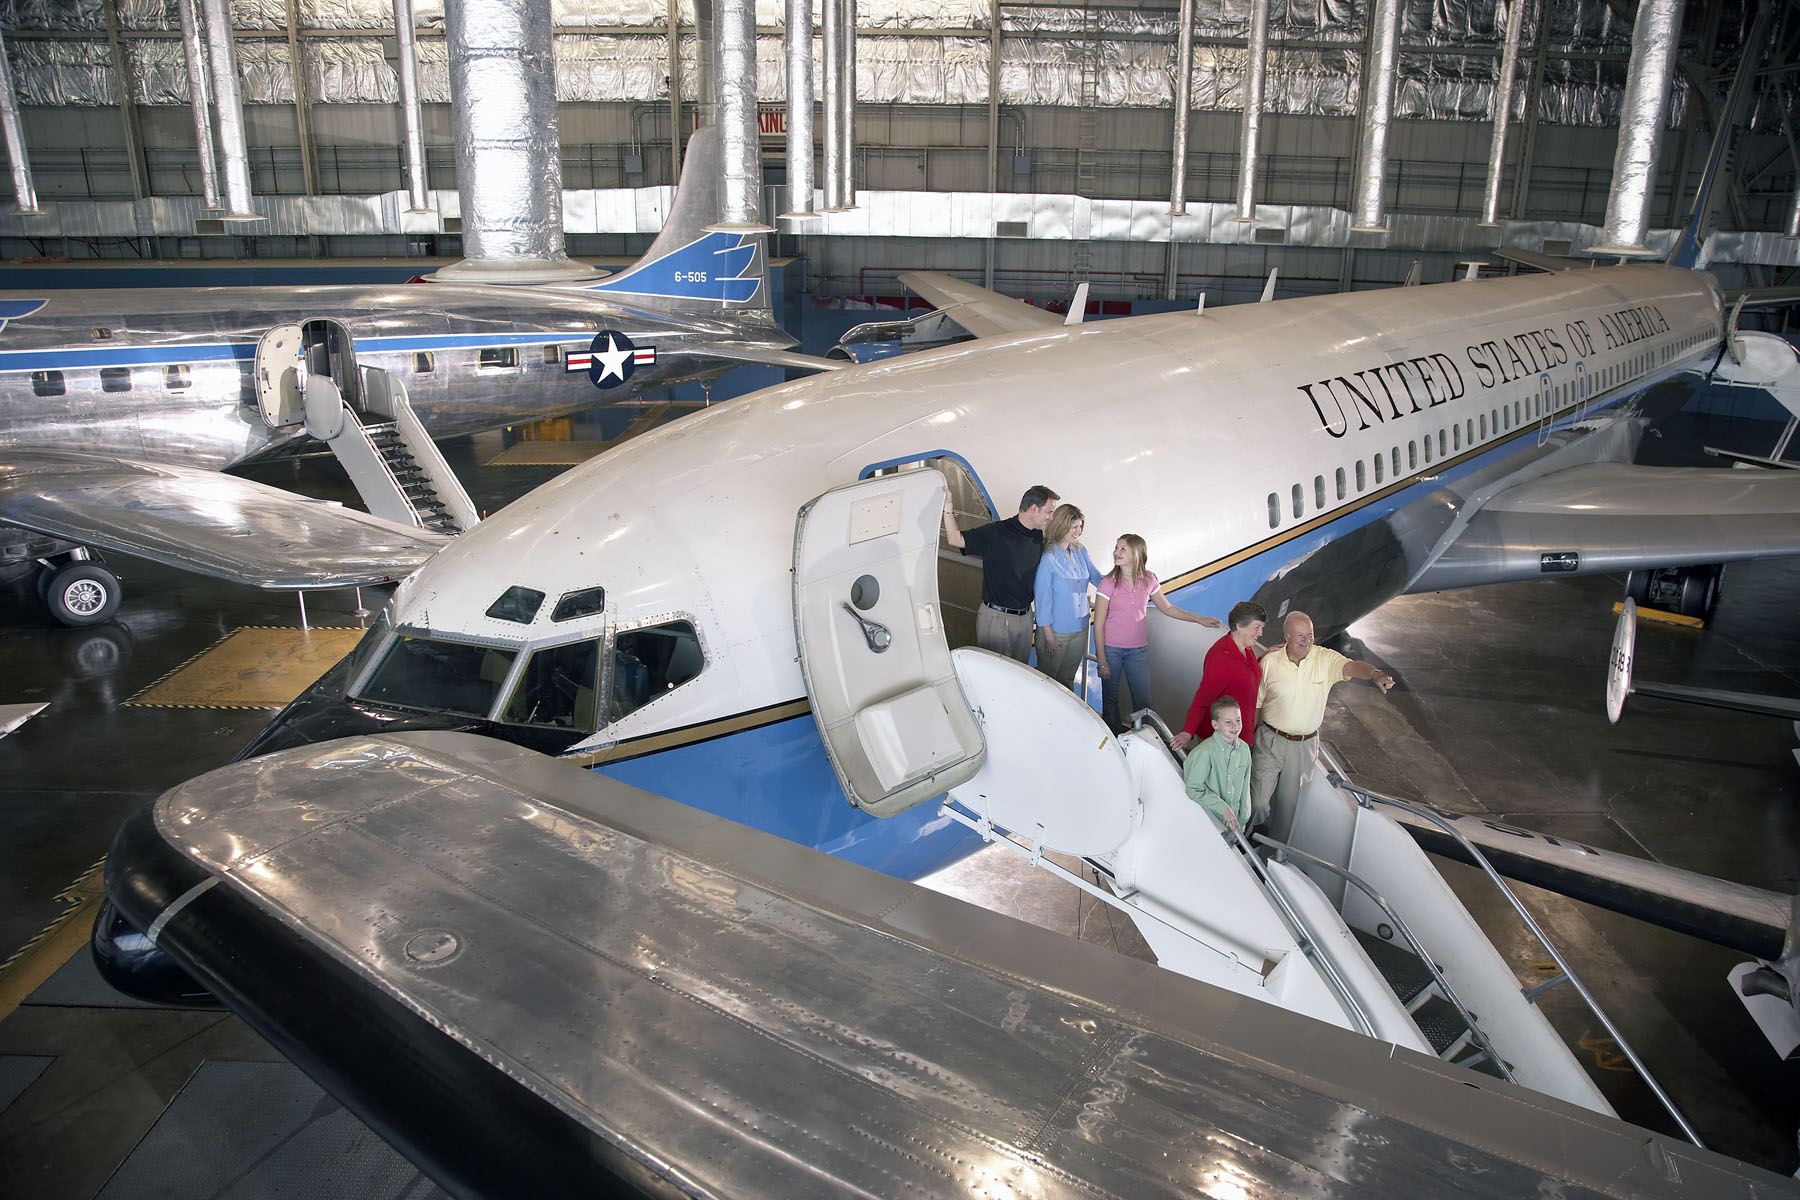 National Air Force Museum >> Air Force Museum Not Selected To Receive Space Shuttle Orbiter